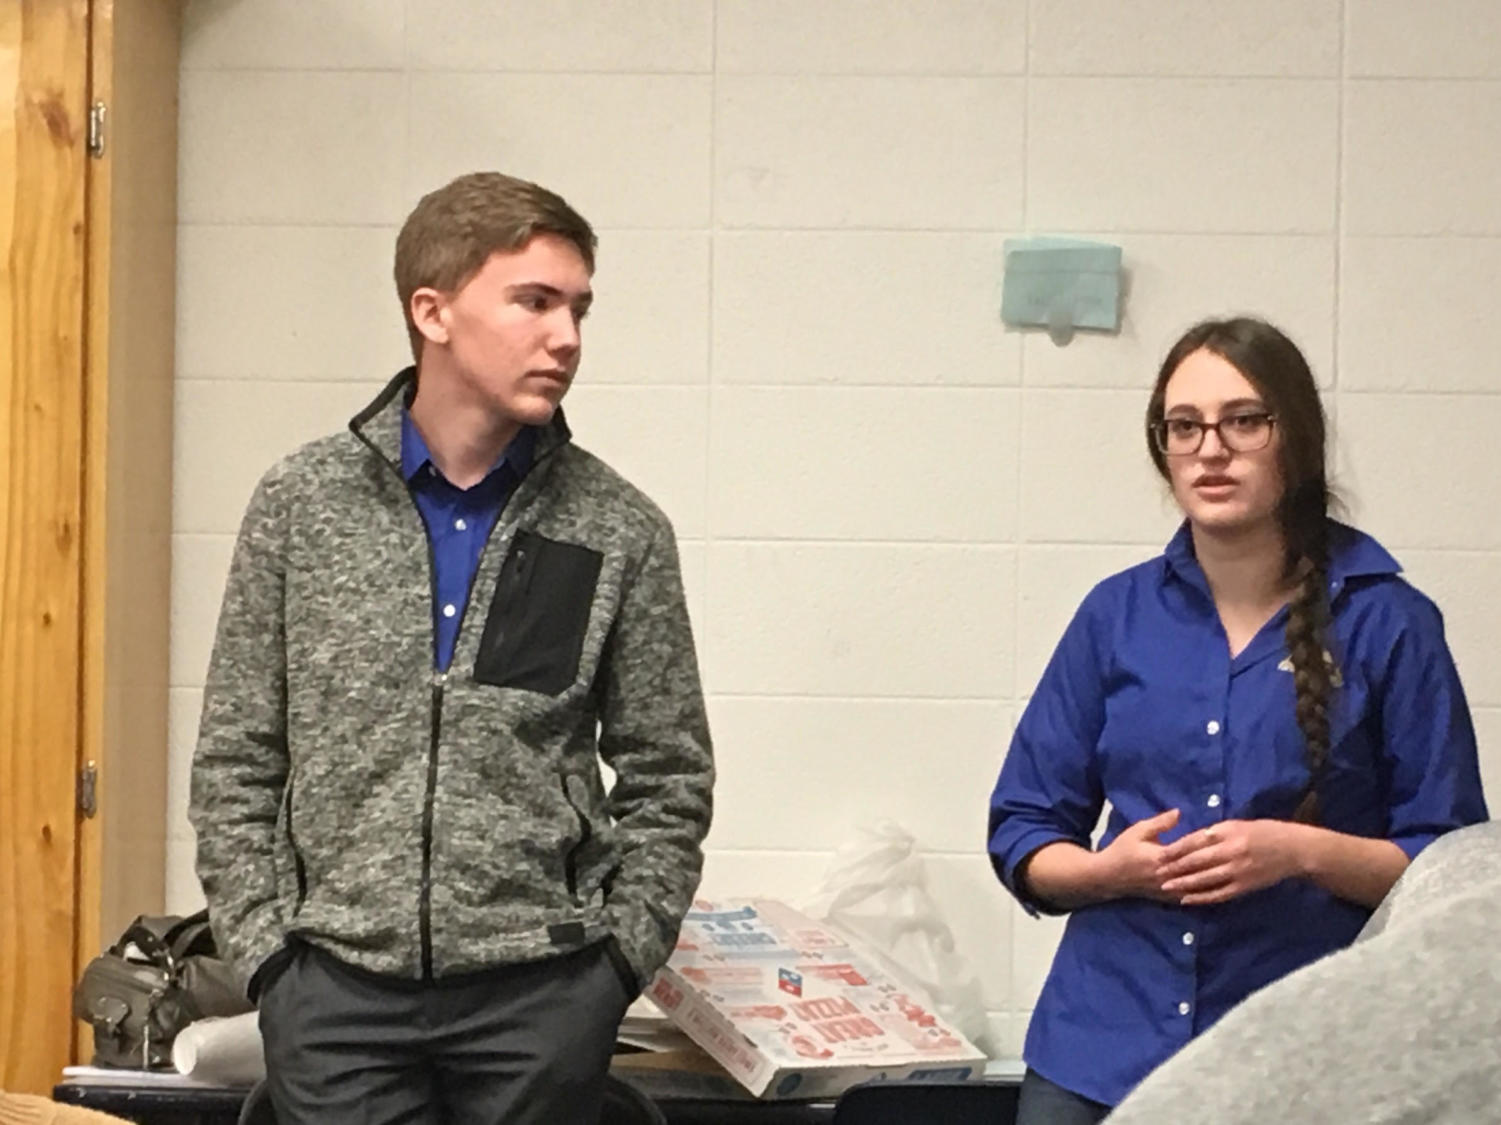 Seniors Spencer Evans and Megan Arscott lead a meeting at Greeley West with potential Junior Board of Trustees students on Tuesday at lunch.